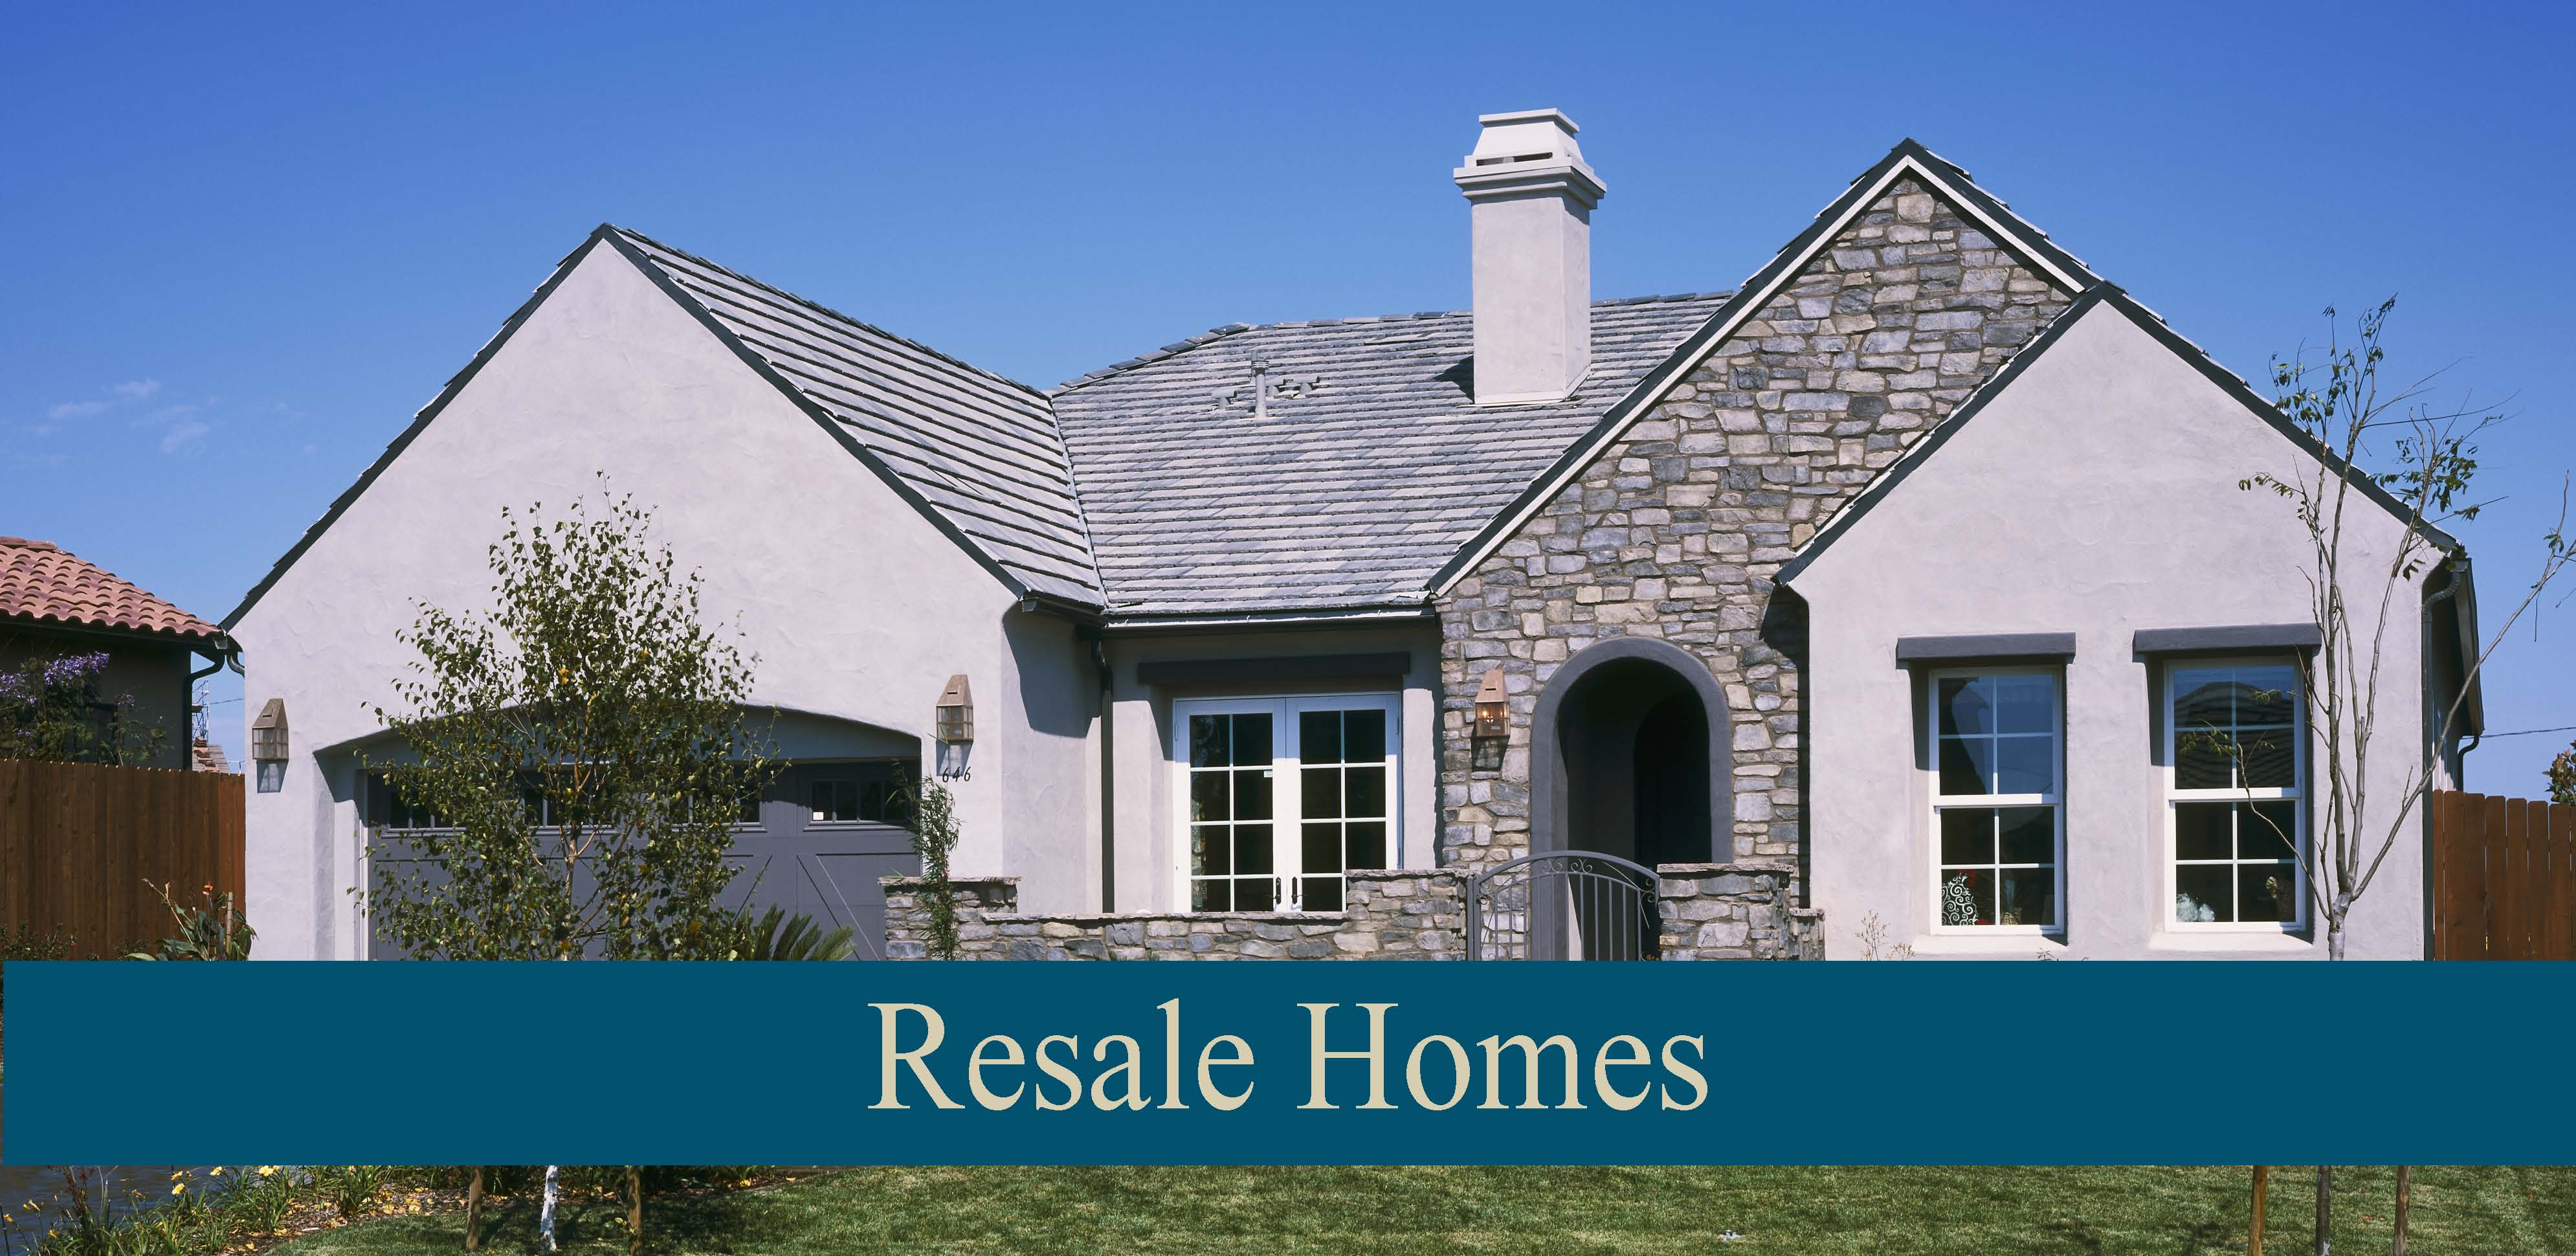 Resale Homes